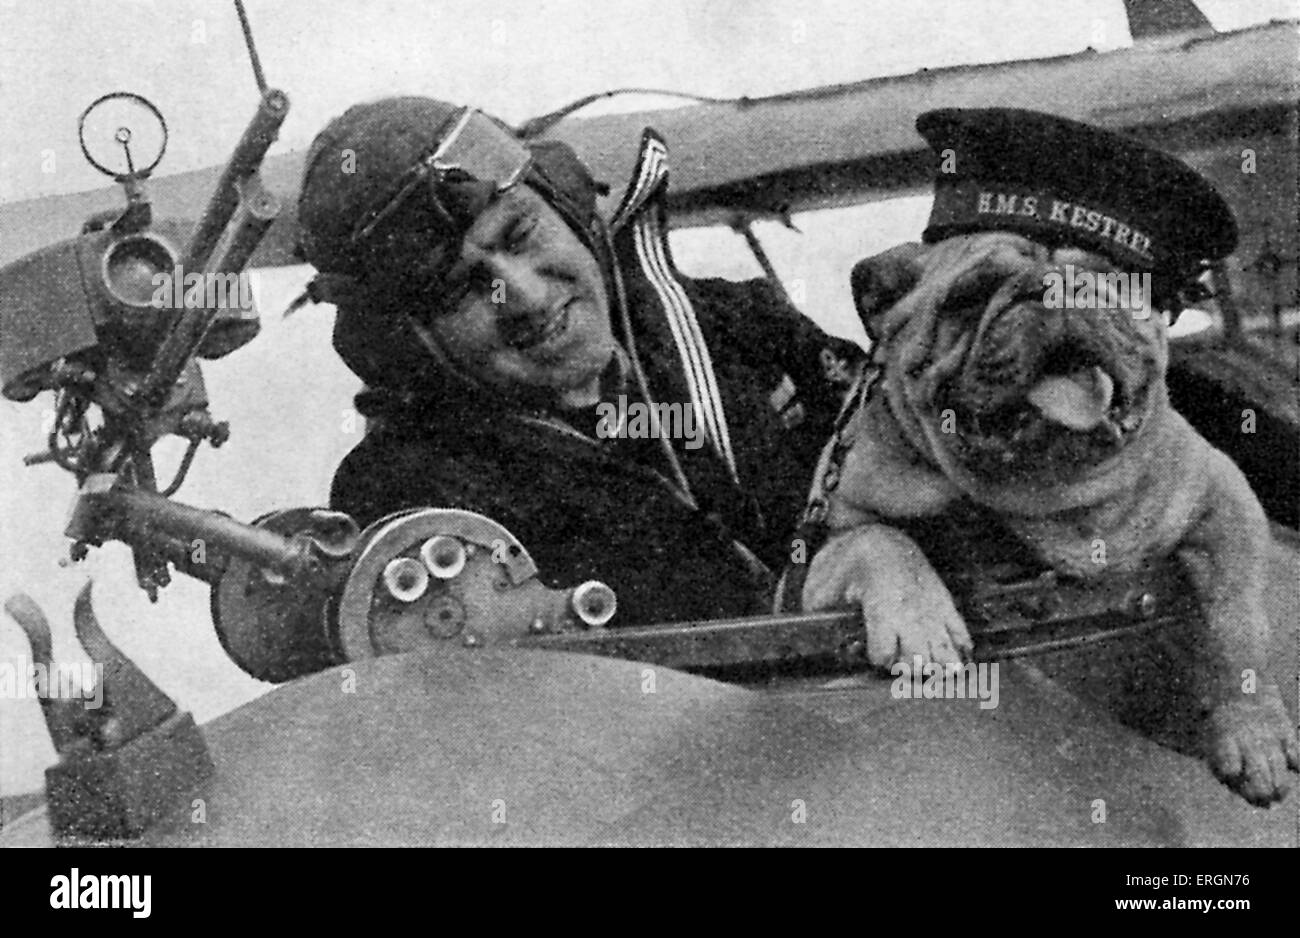 WW2 - A pilot on his plane with a British bulldog. - Stock Image